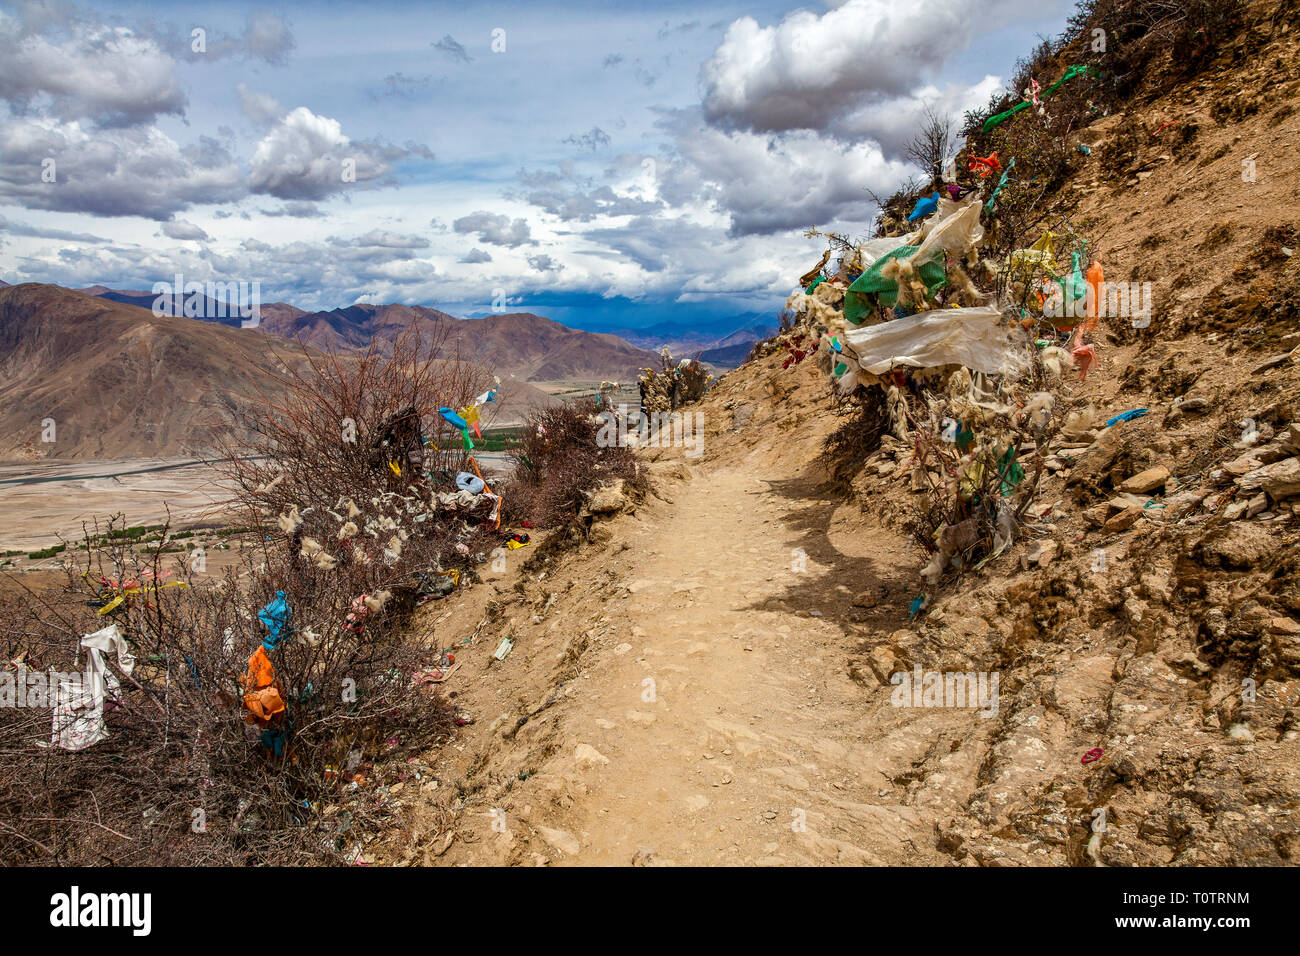 Yak hair, sheep wool and discarded prayer flags along the path leading to Ganden monastery.  Outside Lhasa, Tibet, China. - Stock Image